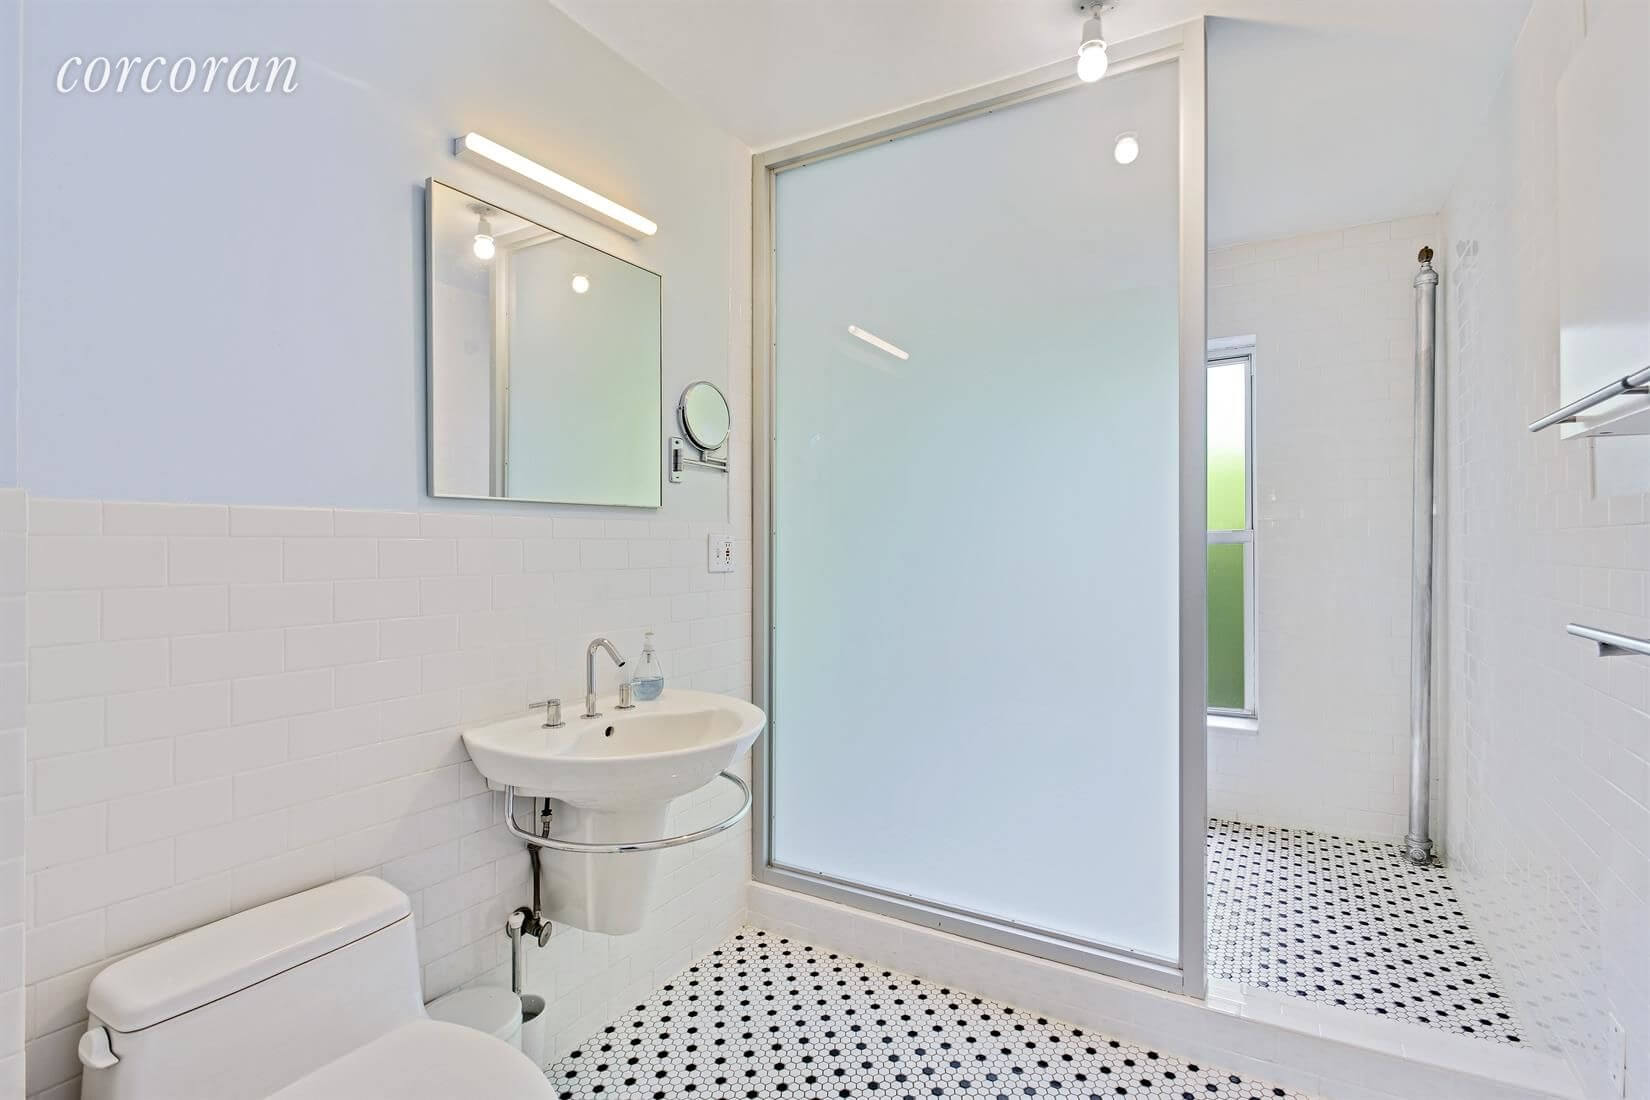 Brooklyn Homes for Sale in Fort Greene at 403 Clermont Avenue